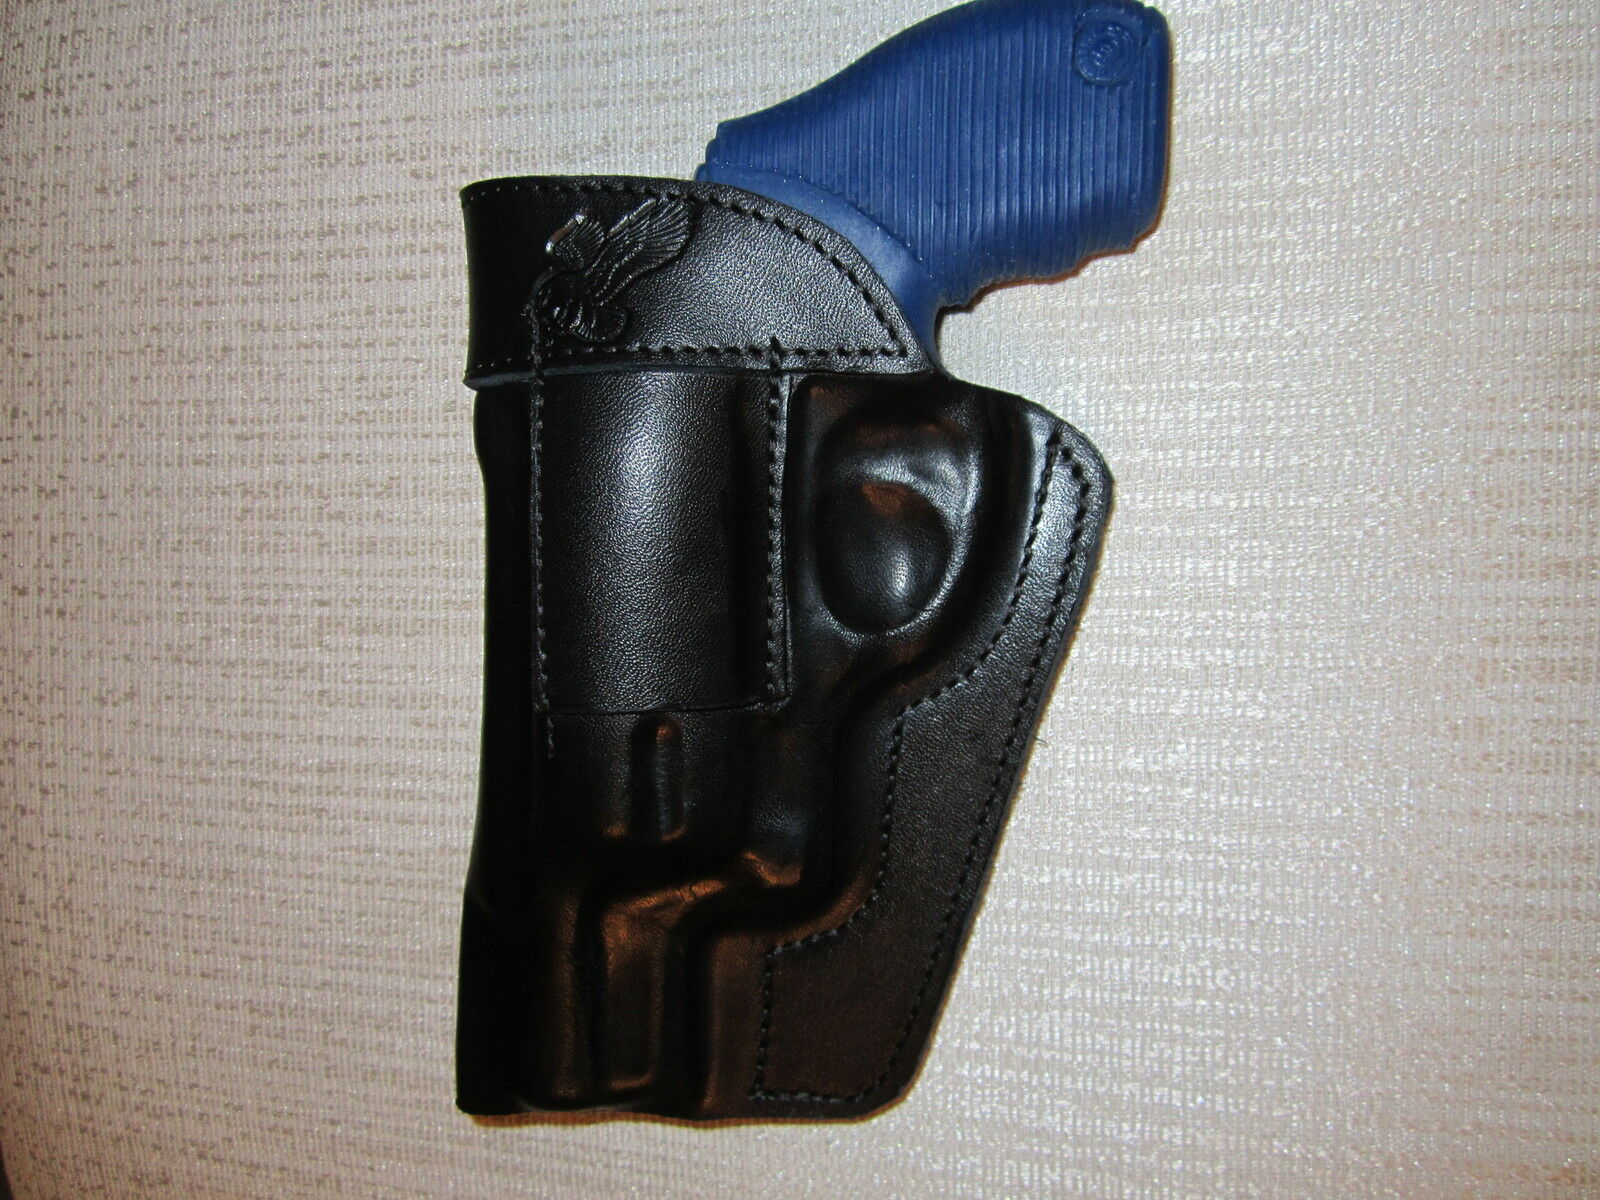 FITS Taurus 4510 Judge, public defender,ambidextrous formed leather holster